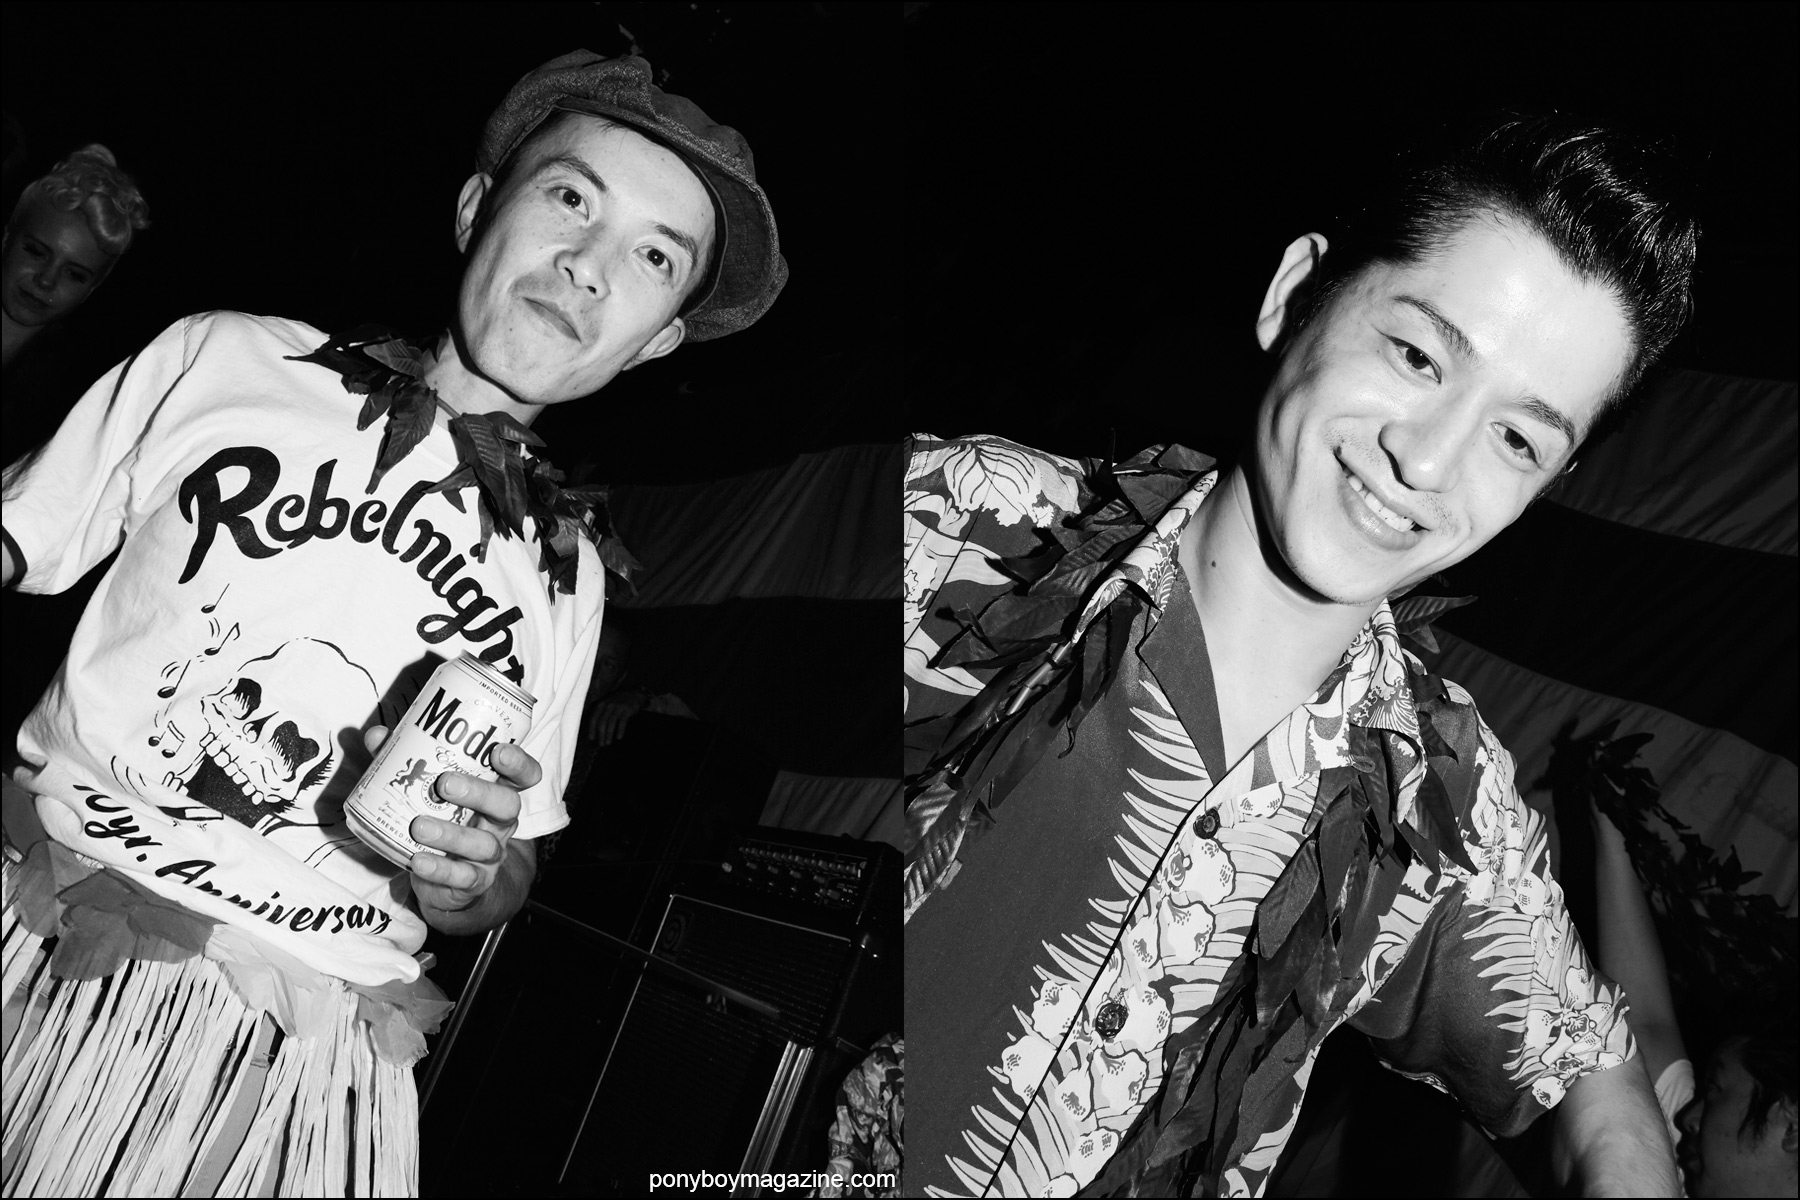 Japanese rockabilly dj's at Hula Rock Vol 2 weekender in New York City. Photographs by Alexander Thompson for Ponyboy magazine NY.